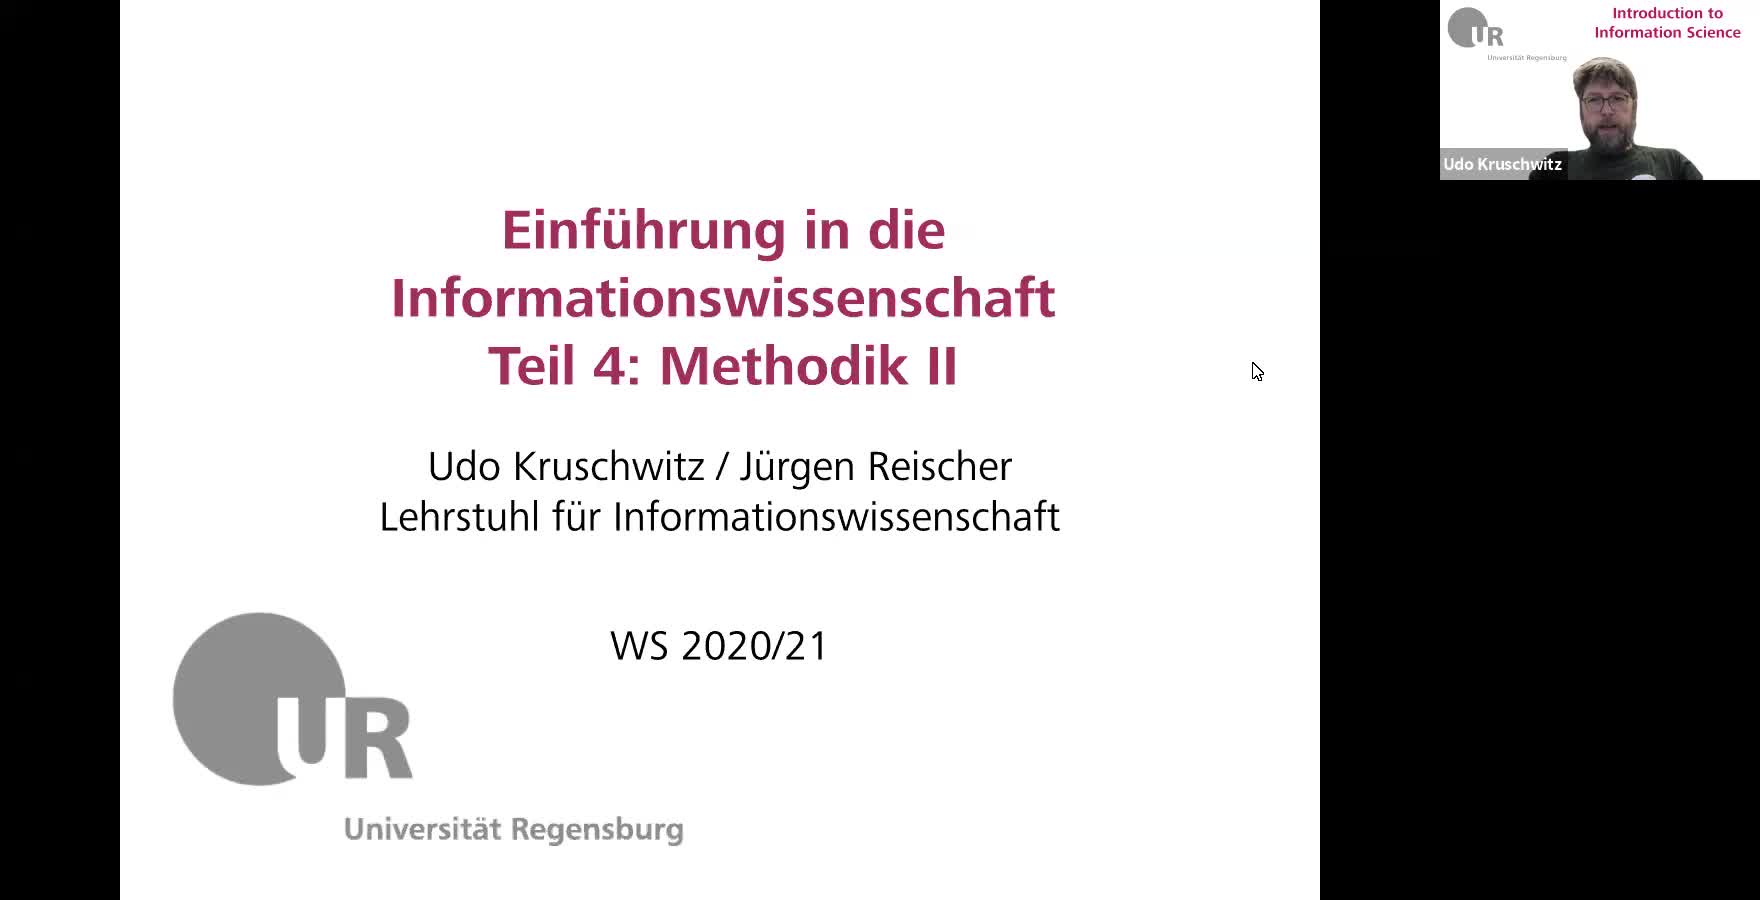 Introduction to Information Science - Lecture 7 (Research methods II - continued)